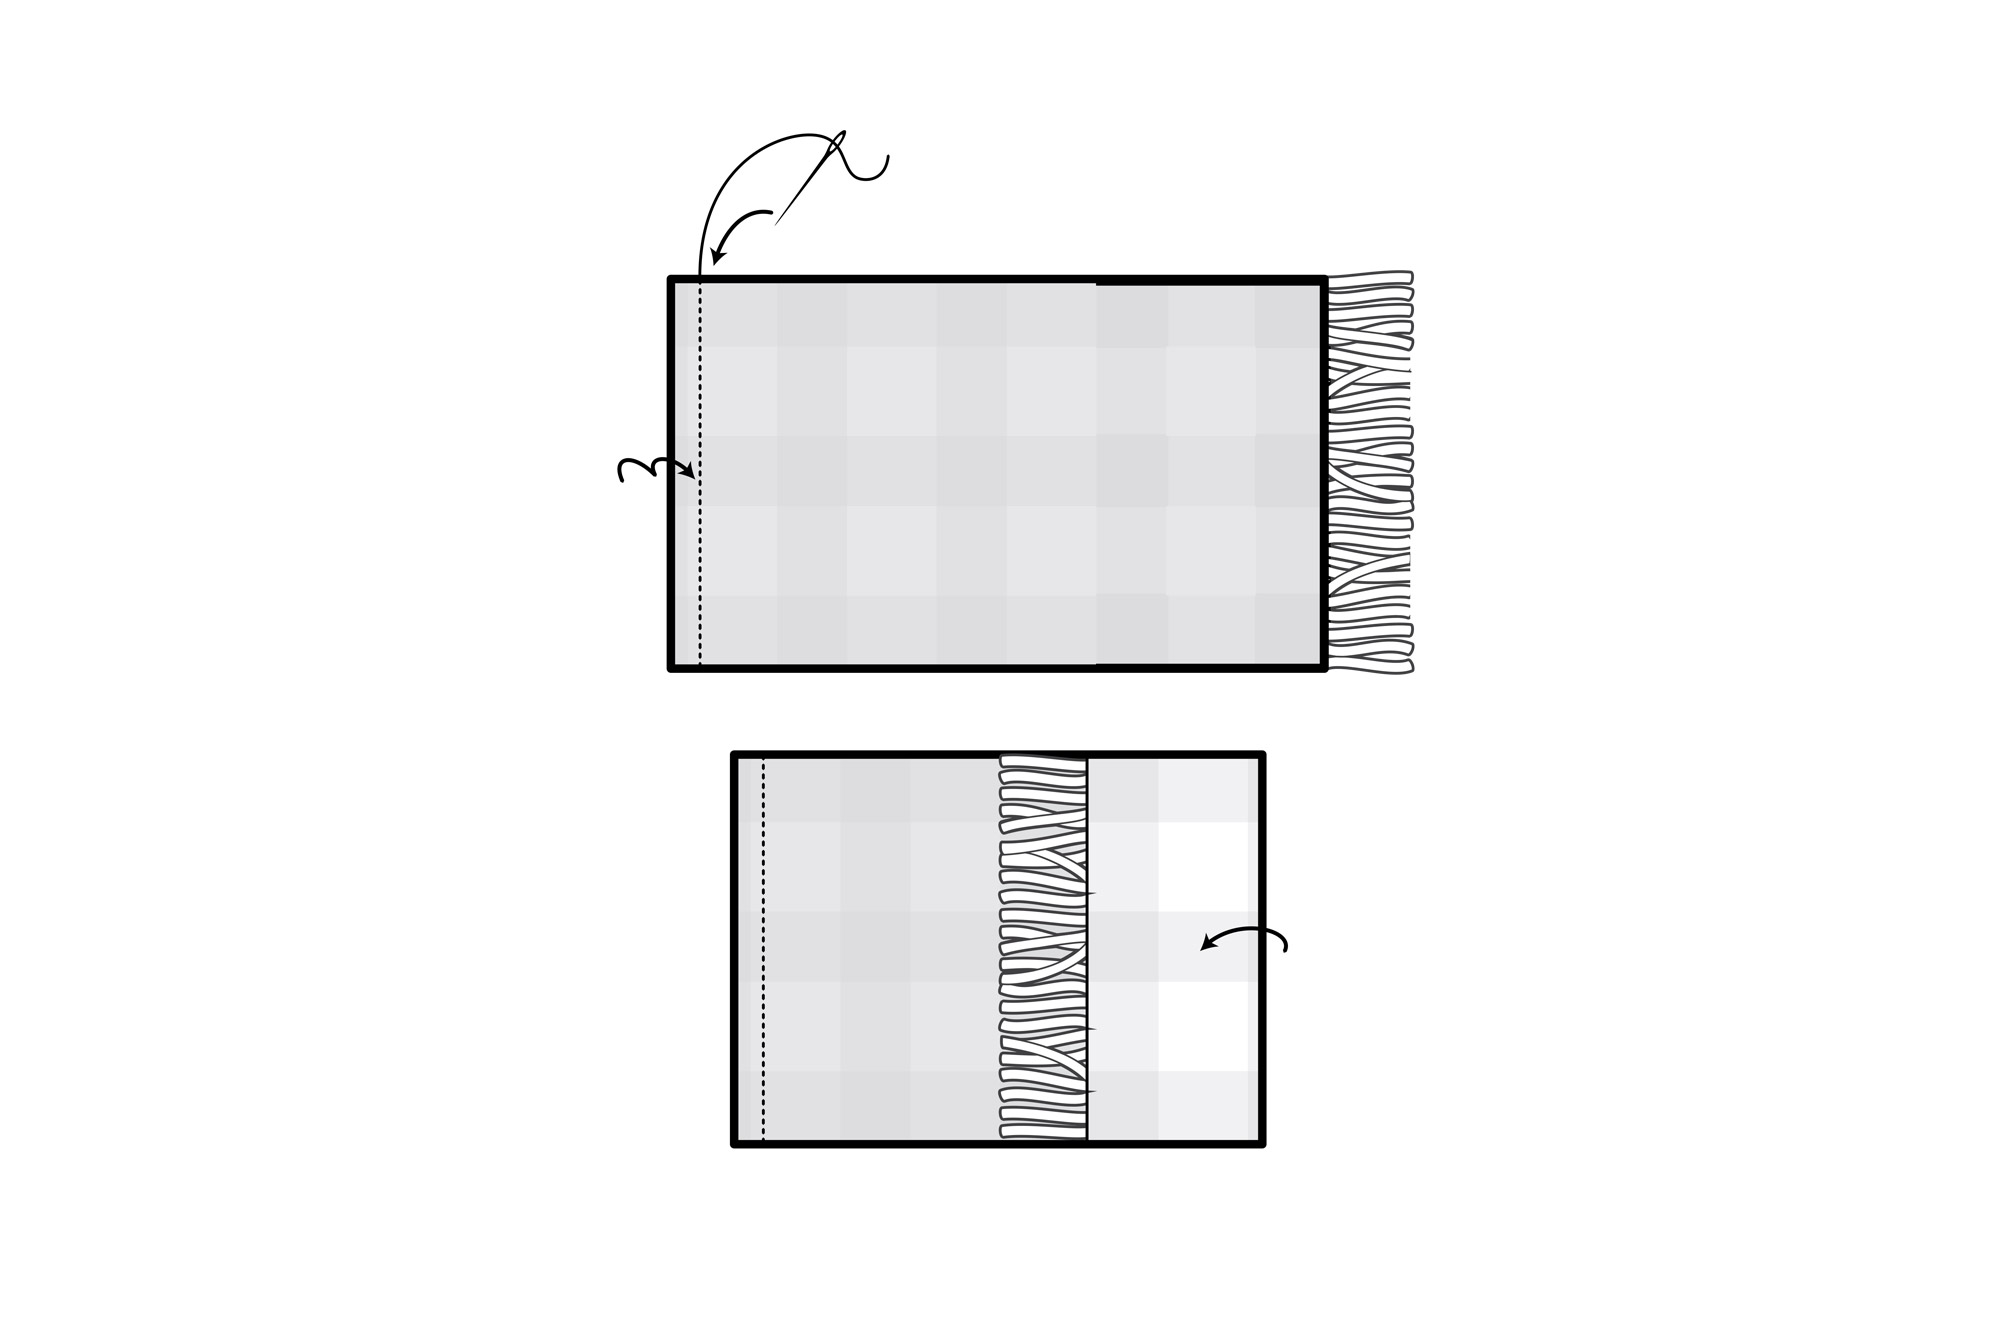 fabric flat and fabric folded illustration